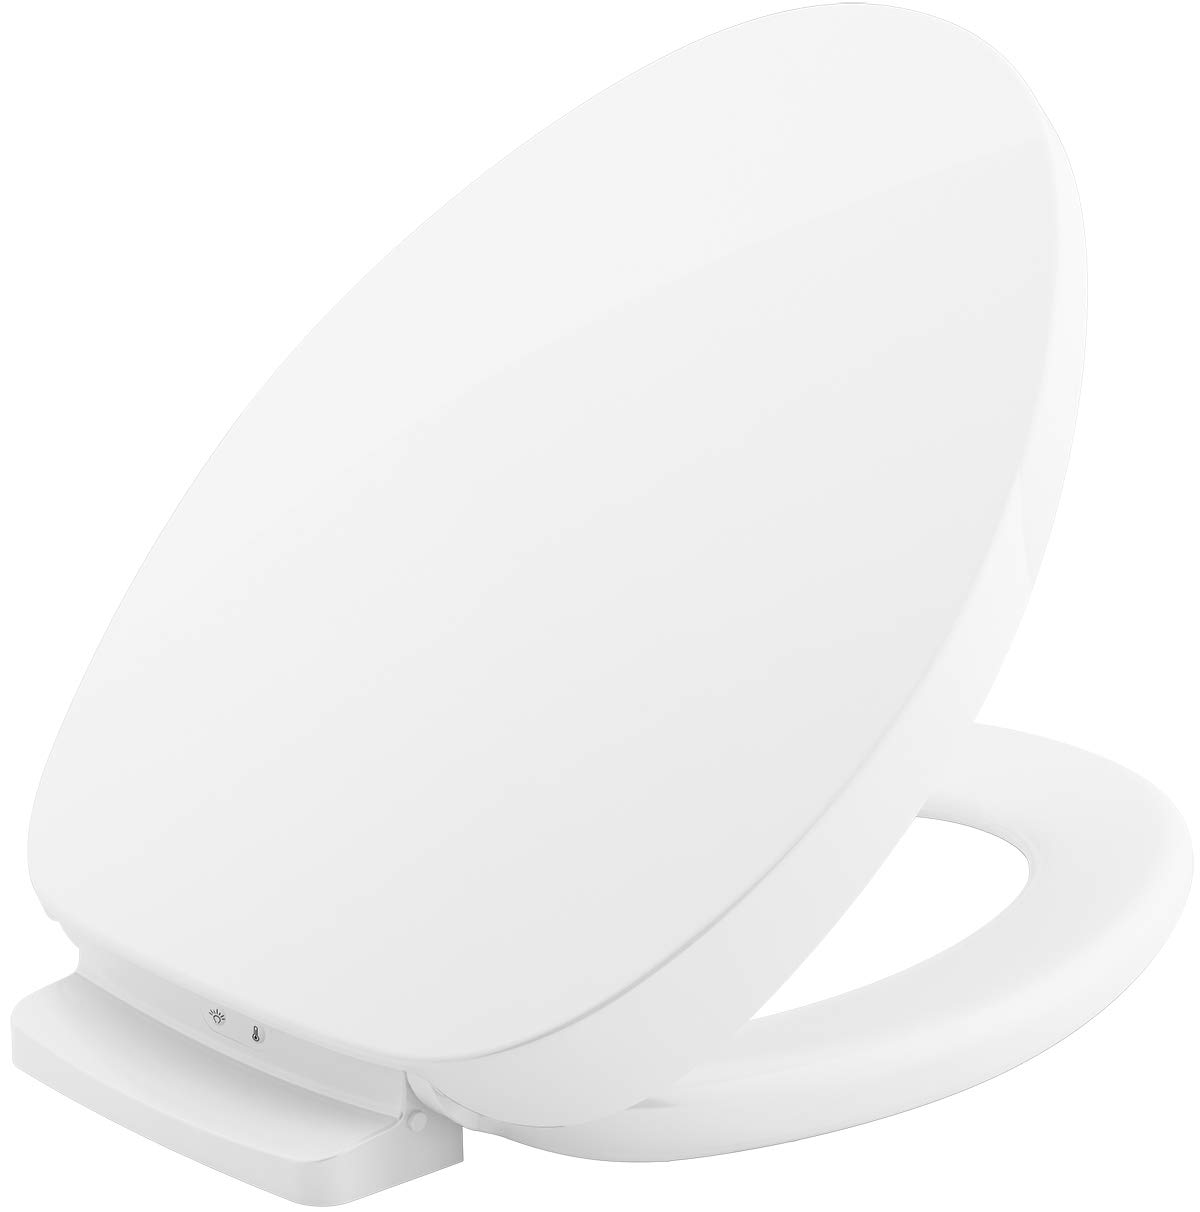 Heated Toilet Seat Amazon.Kohler K 10349 0 Purewarmth Heated Toilet Seat Elongated White With Quiet Close Lid And Seat Adjustable Led Nightlight And Warmth Settings App